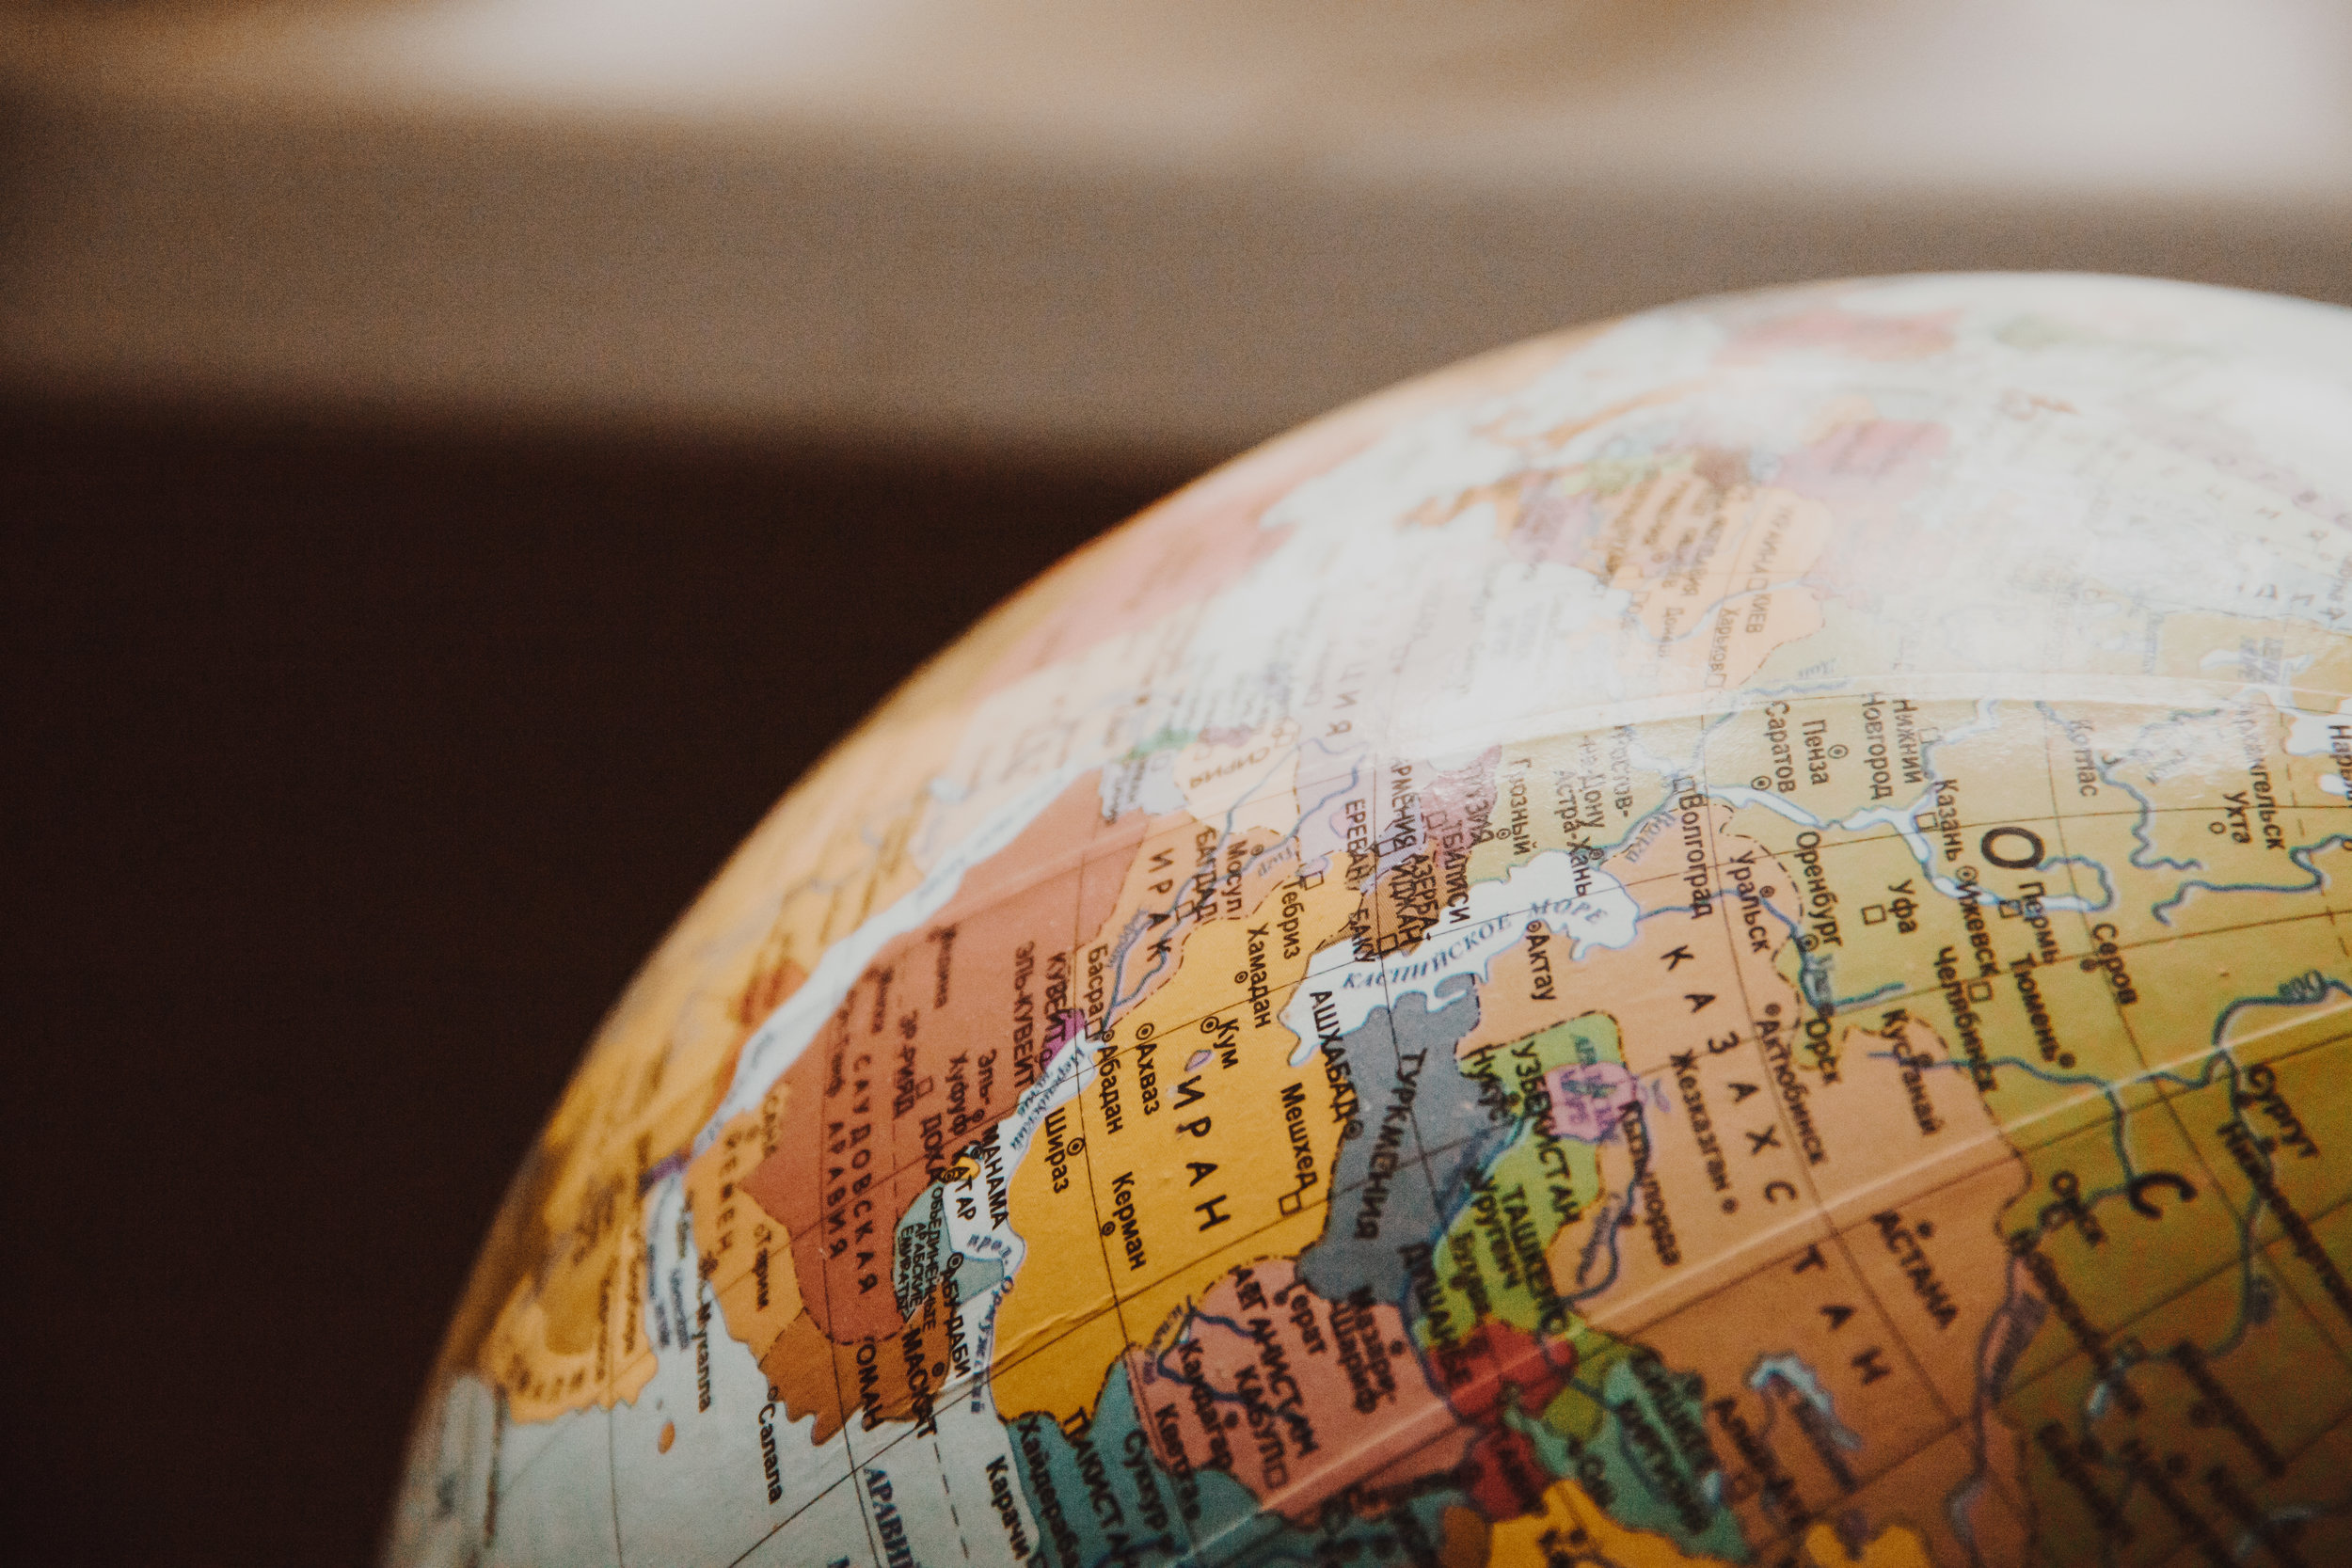 global insurance - In partnership with Clements Worldwide, we ensure your clients are protected no matter where in the world they are.LEARN MORE>>